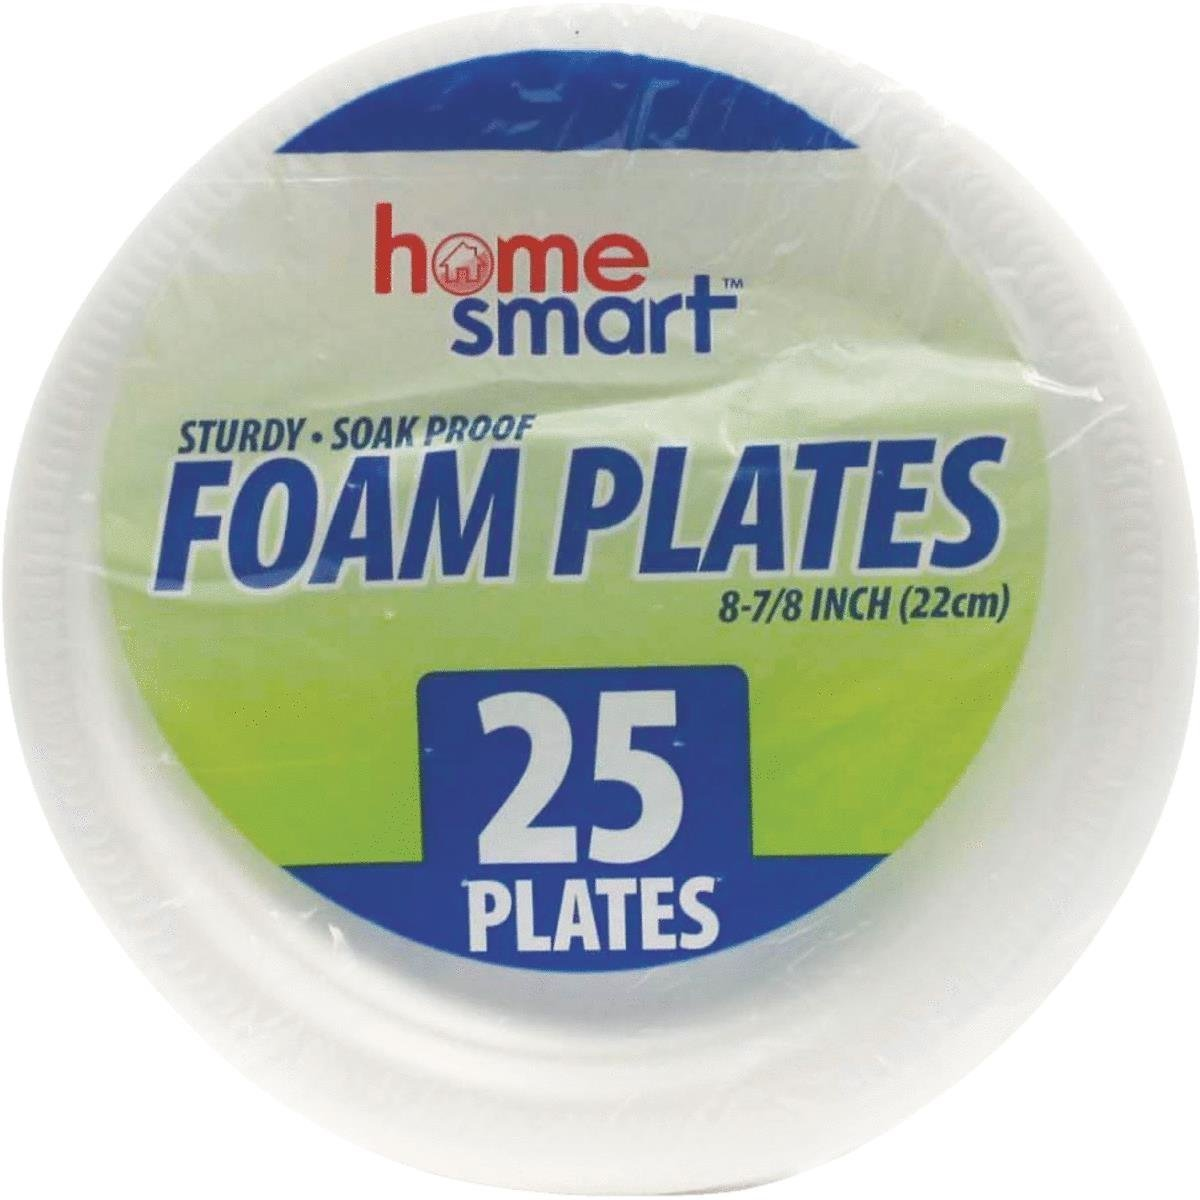 FOAM PLATES HOME SMART 25PCS